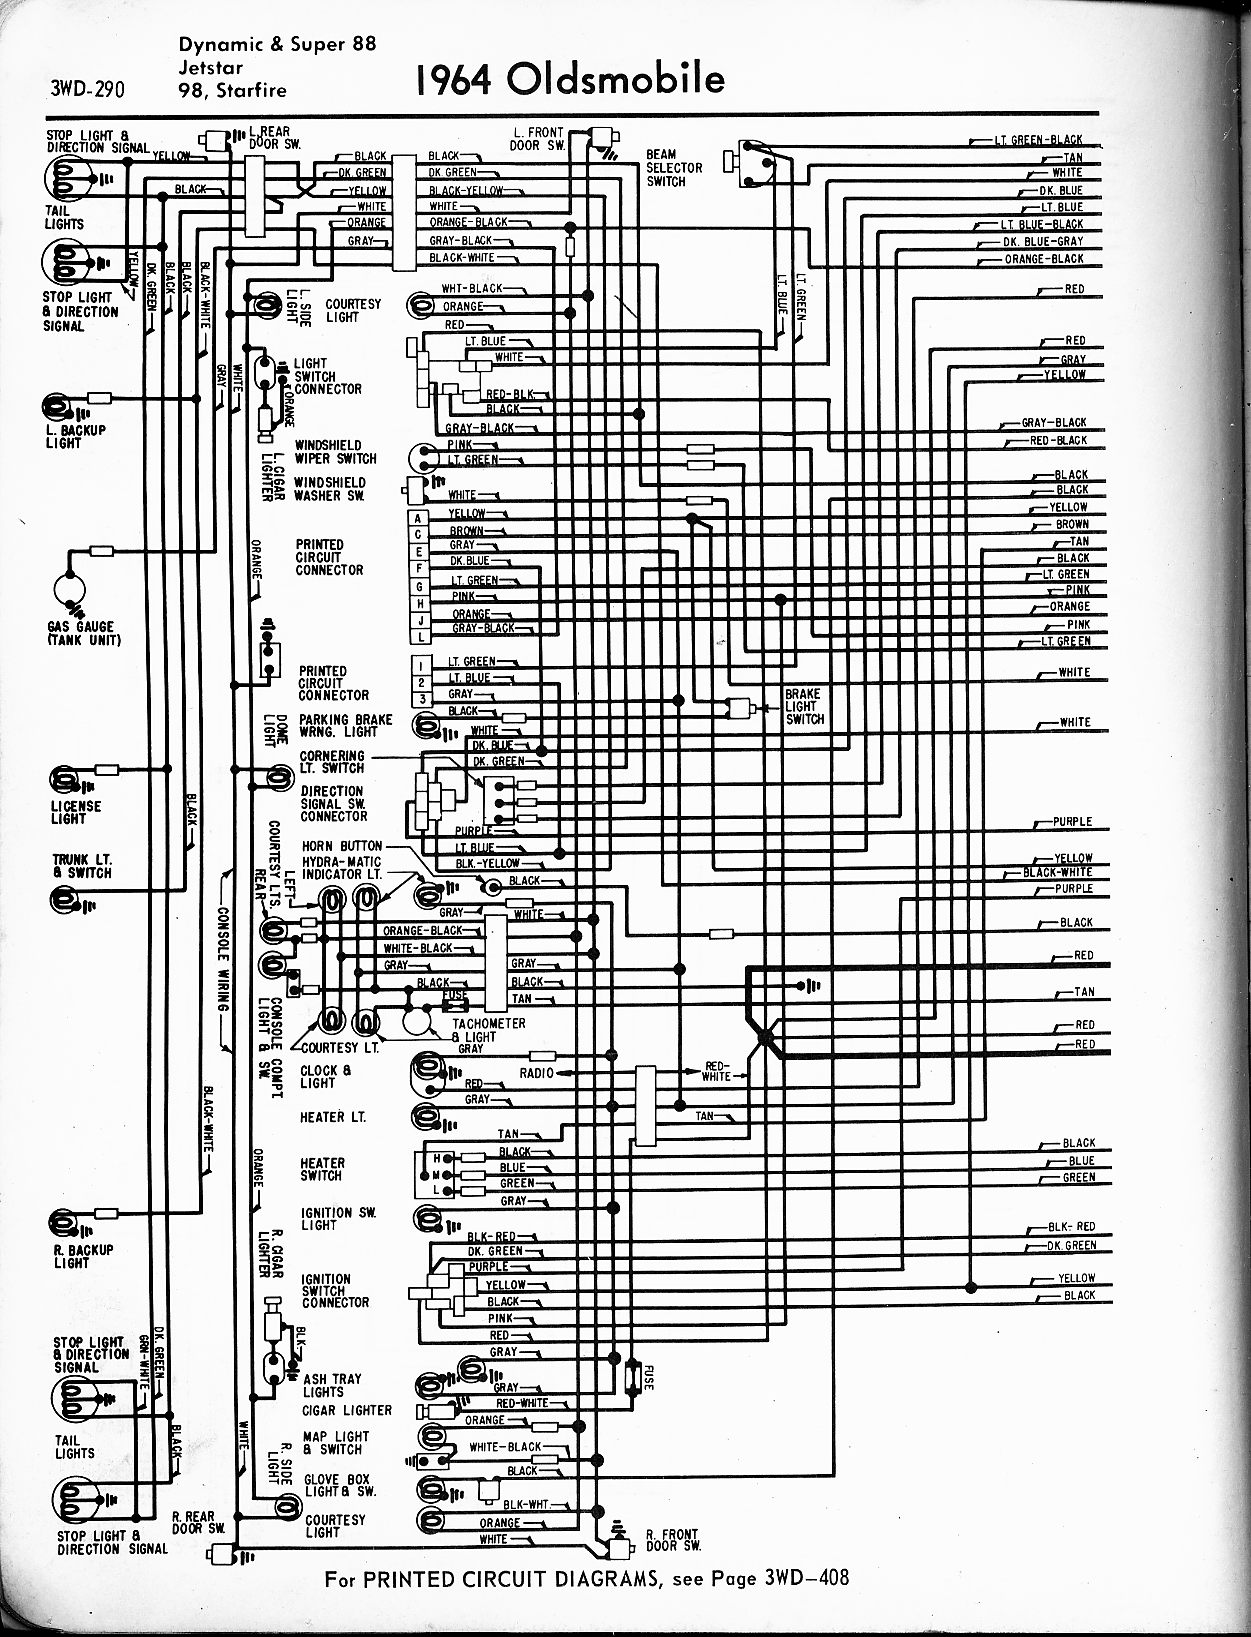 oldsmobile wiring diagrams the old car manual project rh oldcarmanualproject com 1998 Oldsmobile 88 Transmission Diagram 1949 Oldsmobile Wiring-Diagram